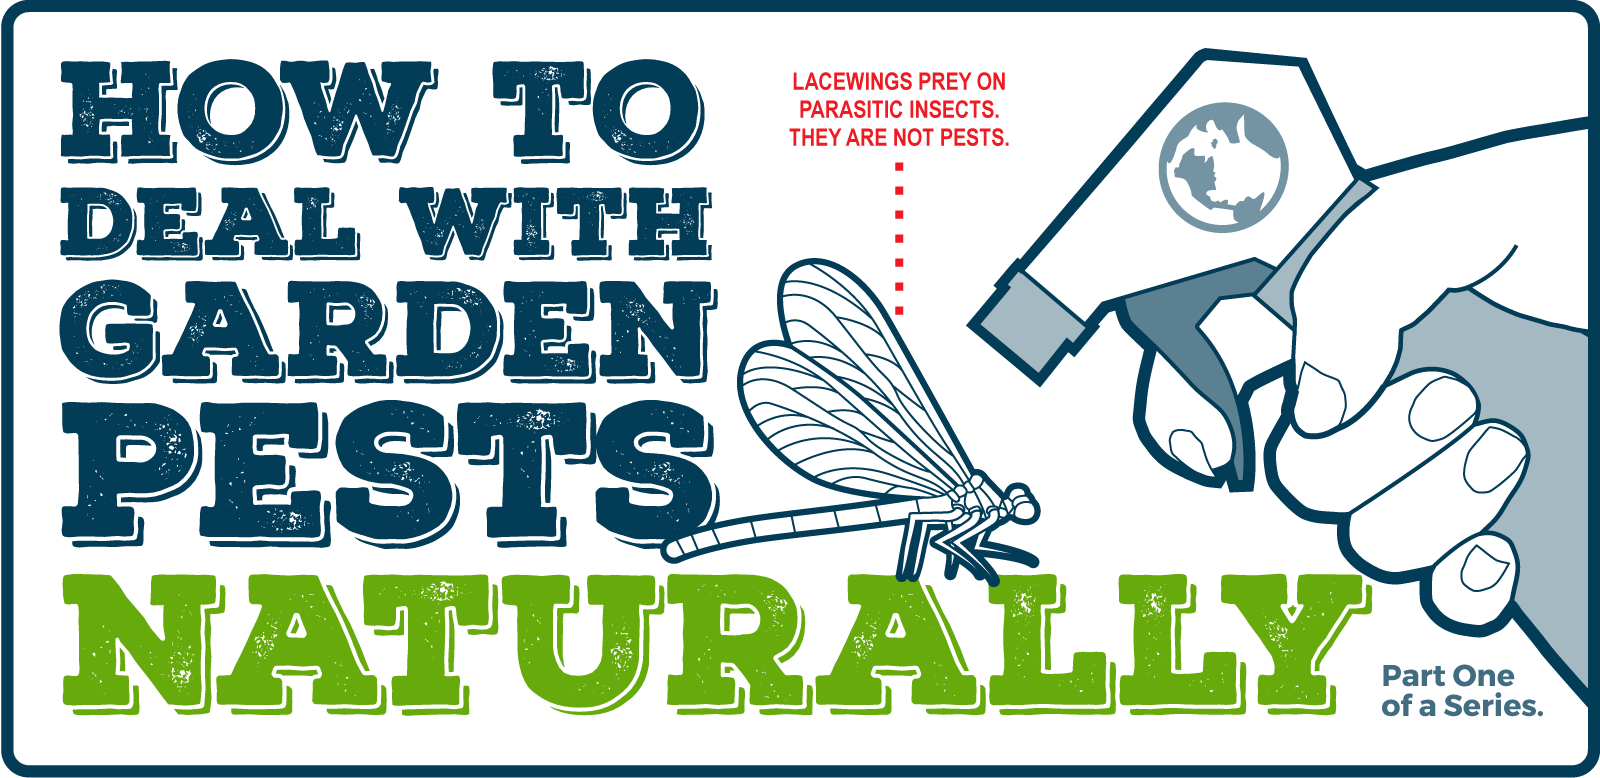 How to get rid of Tomato Plant Pests Naturally.